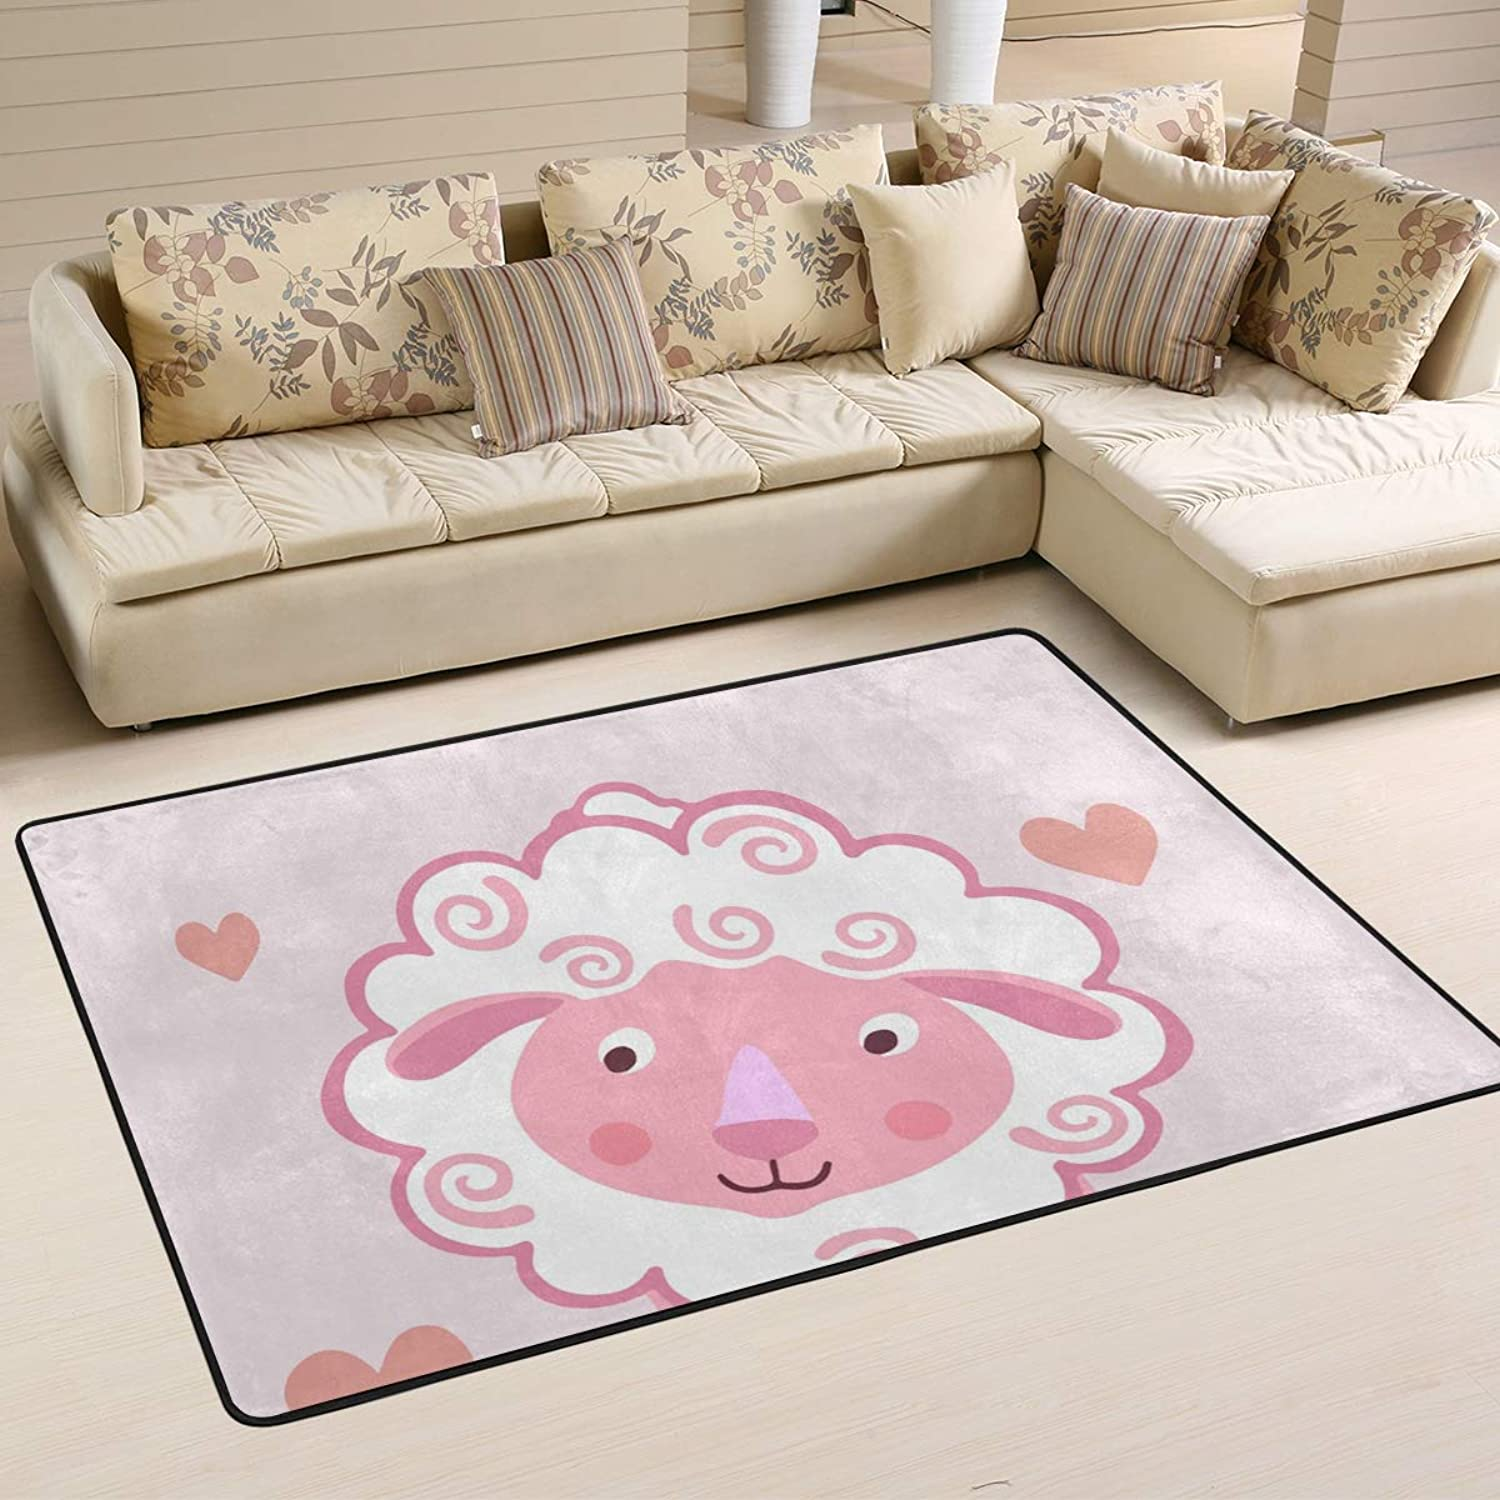 MALPLENA Baby Sheep Rugs for Living Room Doormat Carpet Floor Mats shoes Scraper for Living Room Dining Room Bedroom Kitchen Non Slip